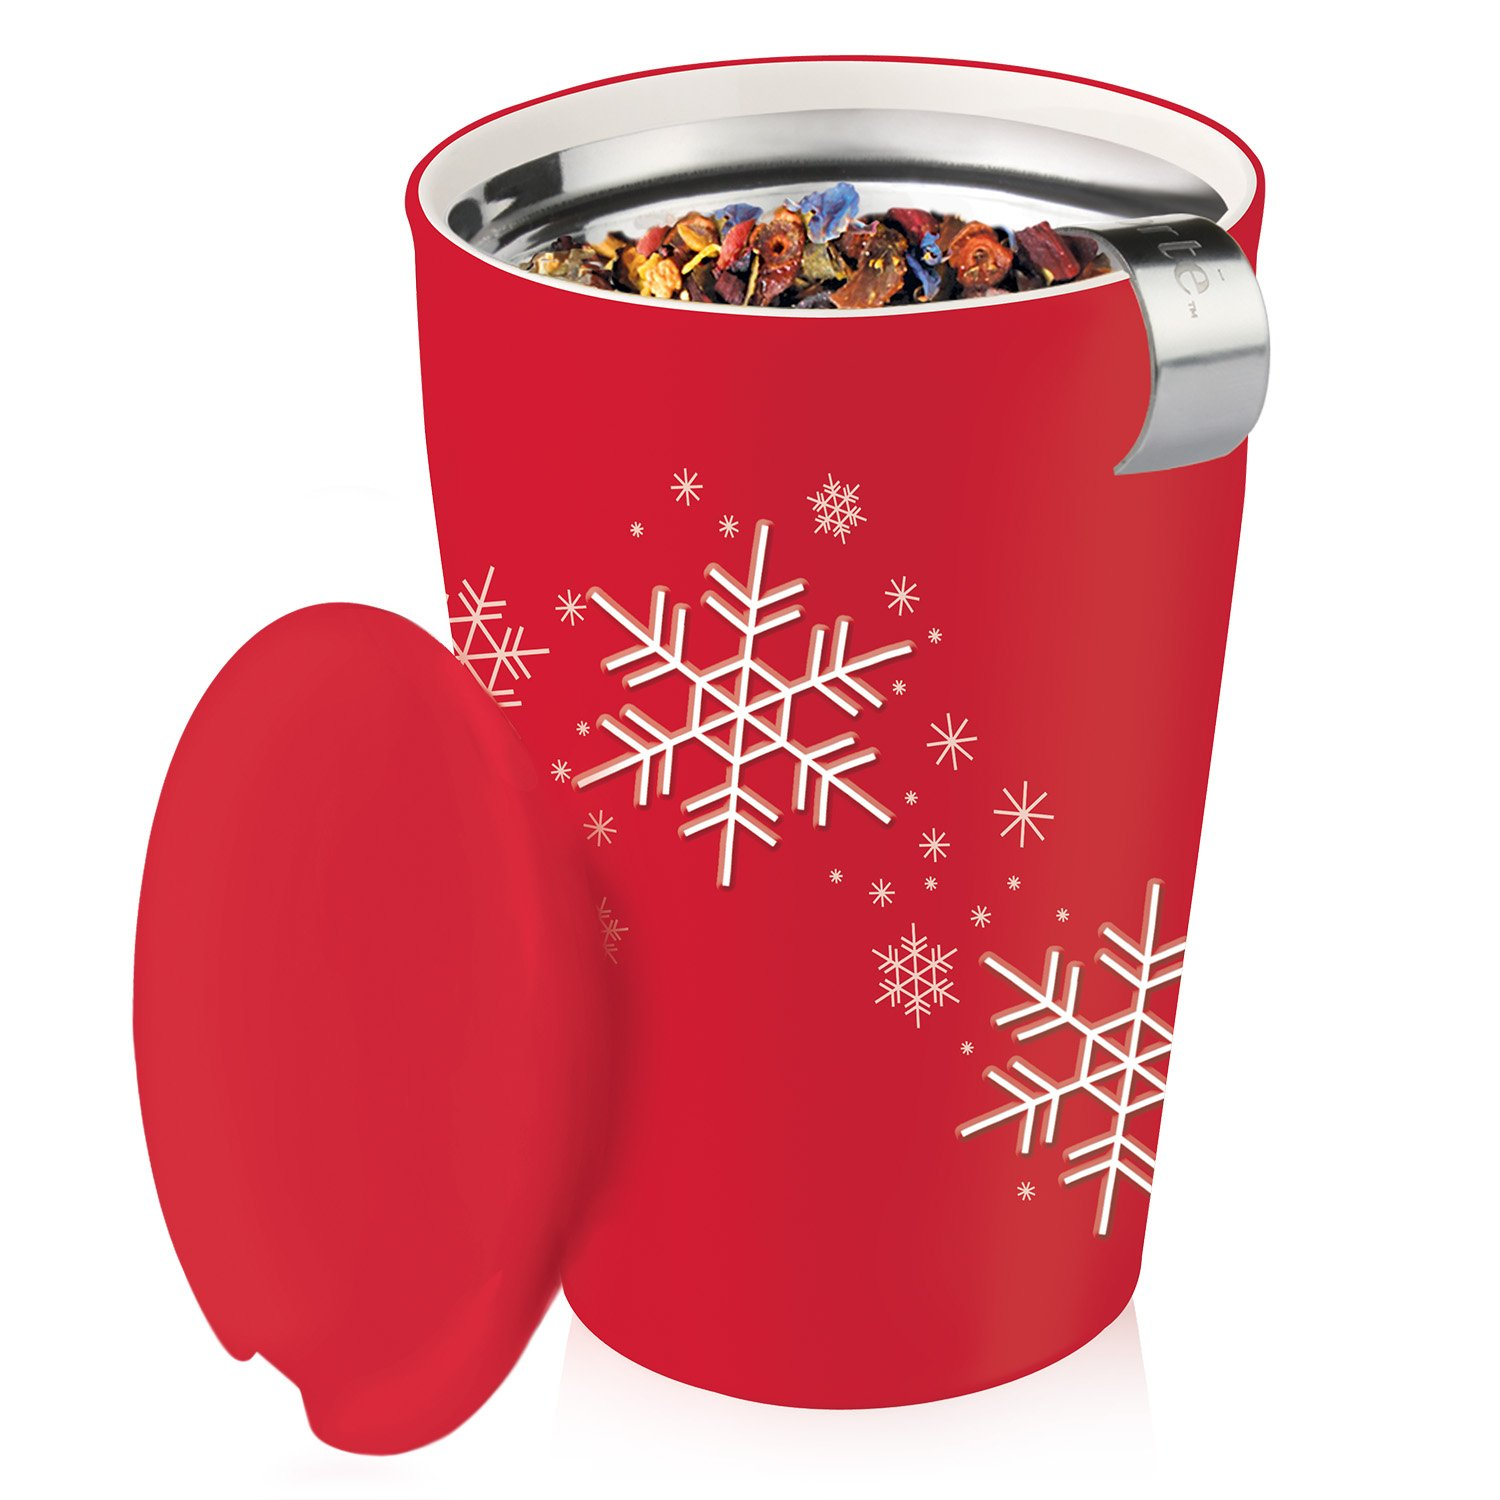 Tea Forté KATI Cup Ceramic Tea Brewing Cup with Infuser Basket and Lid for Steeping, Loose Leaf Tea Maker, Red Snowflake by Tea Forte (Image #5)